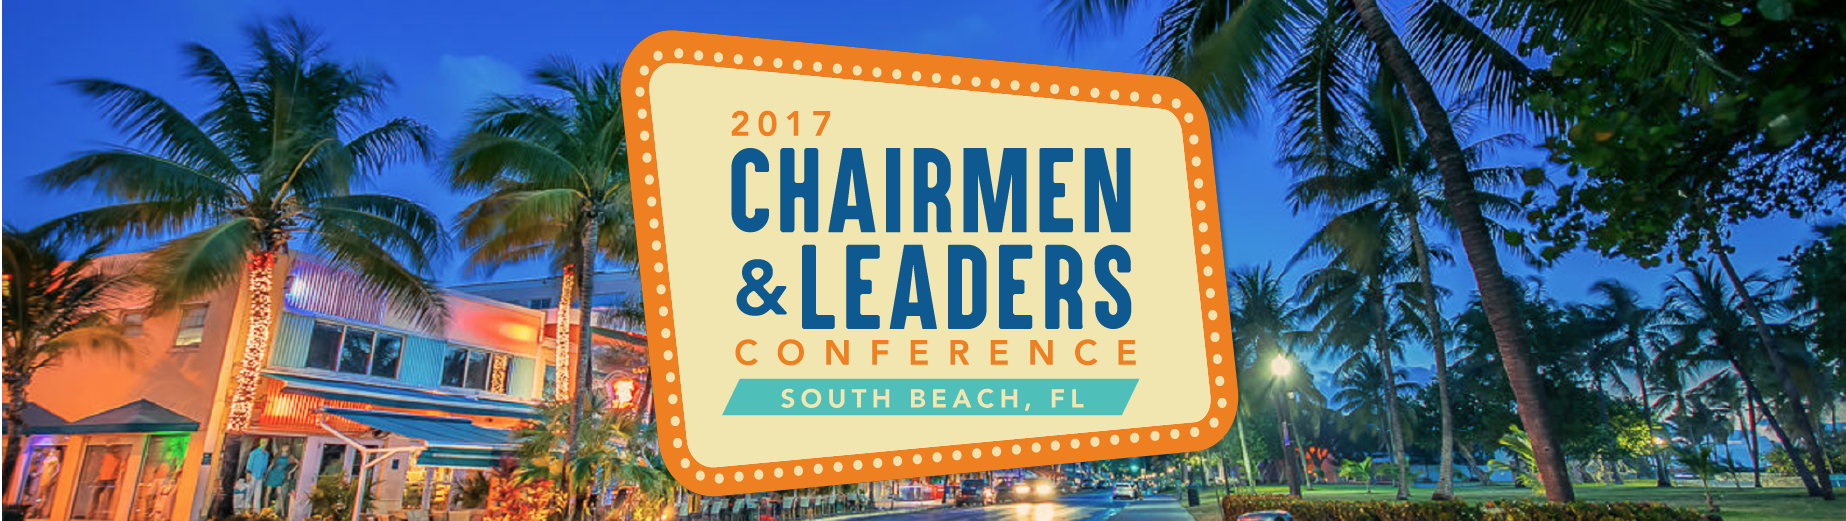 2017 Chairmen & Leaders Conference